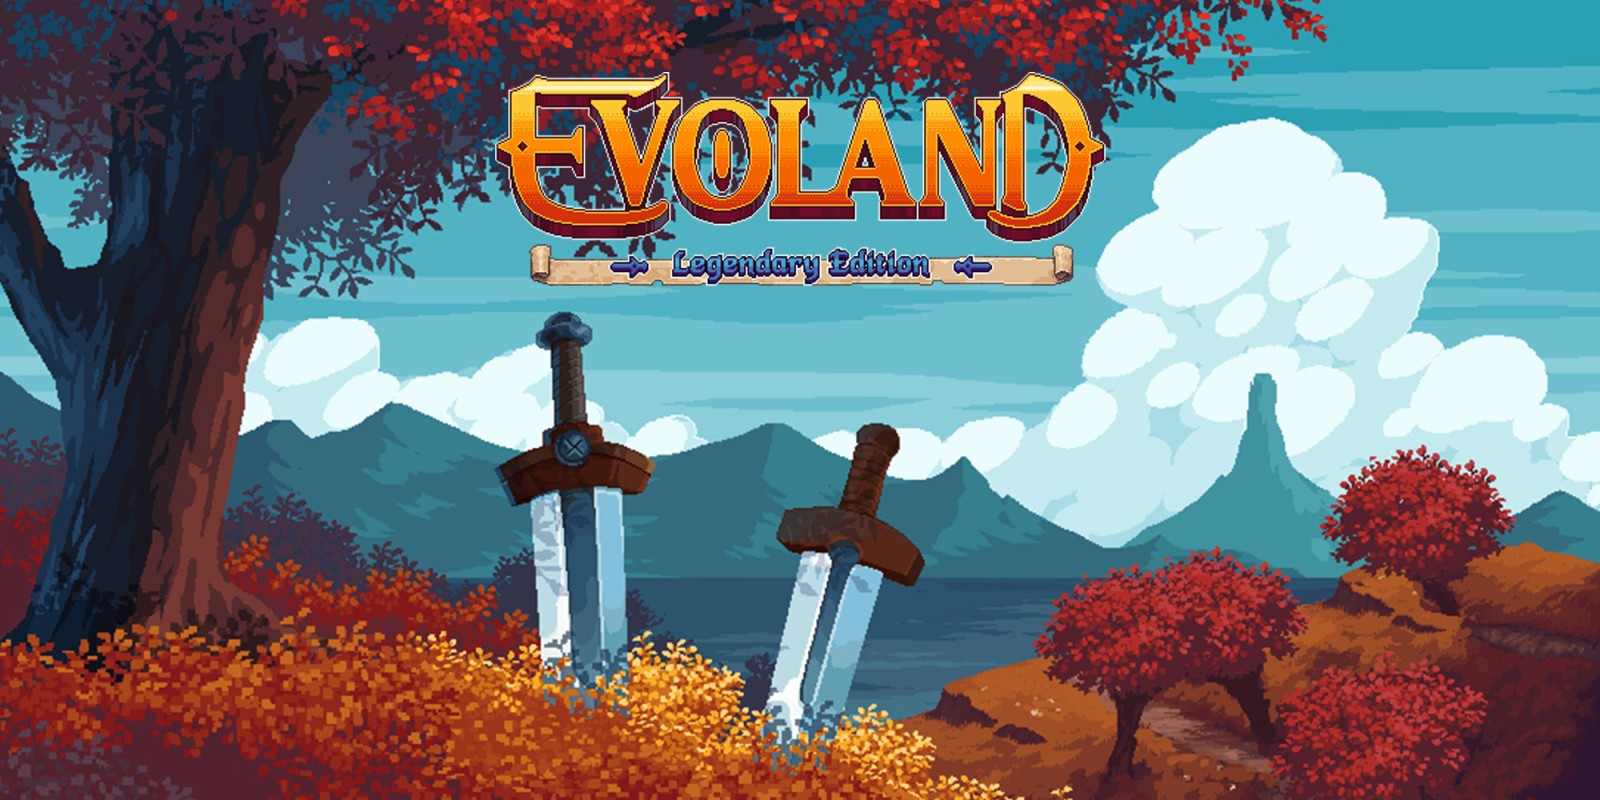 Evoland Legendary Edition